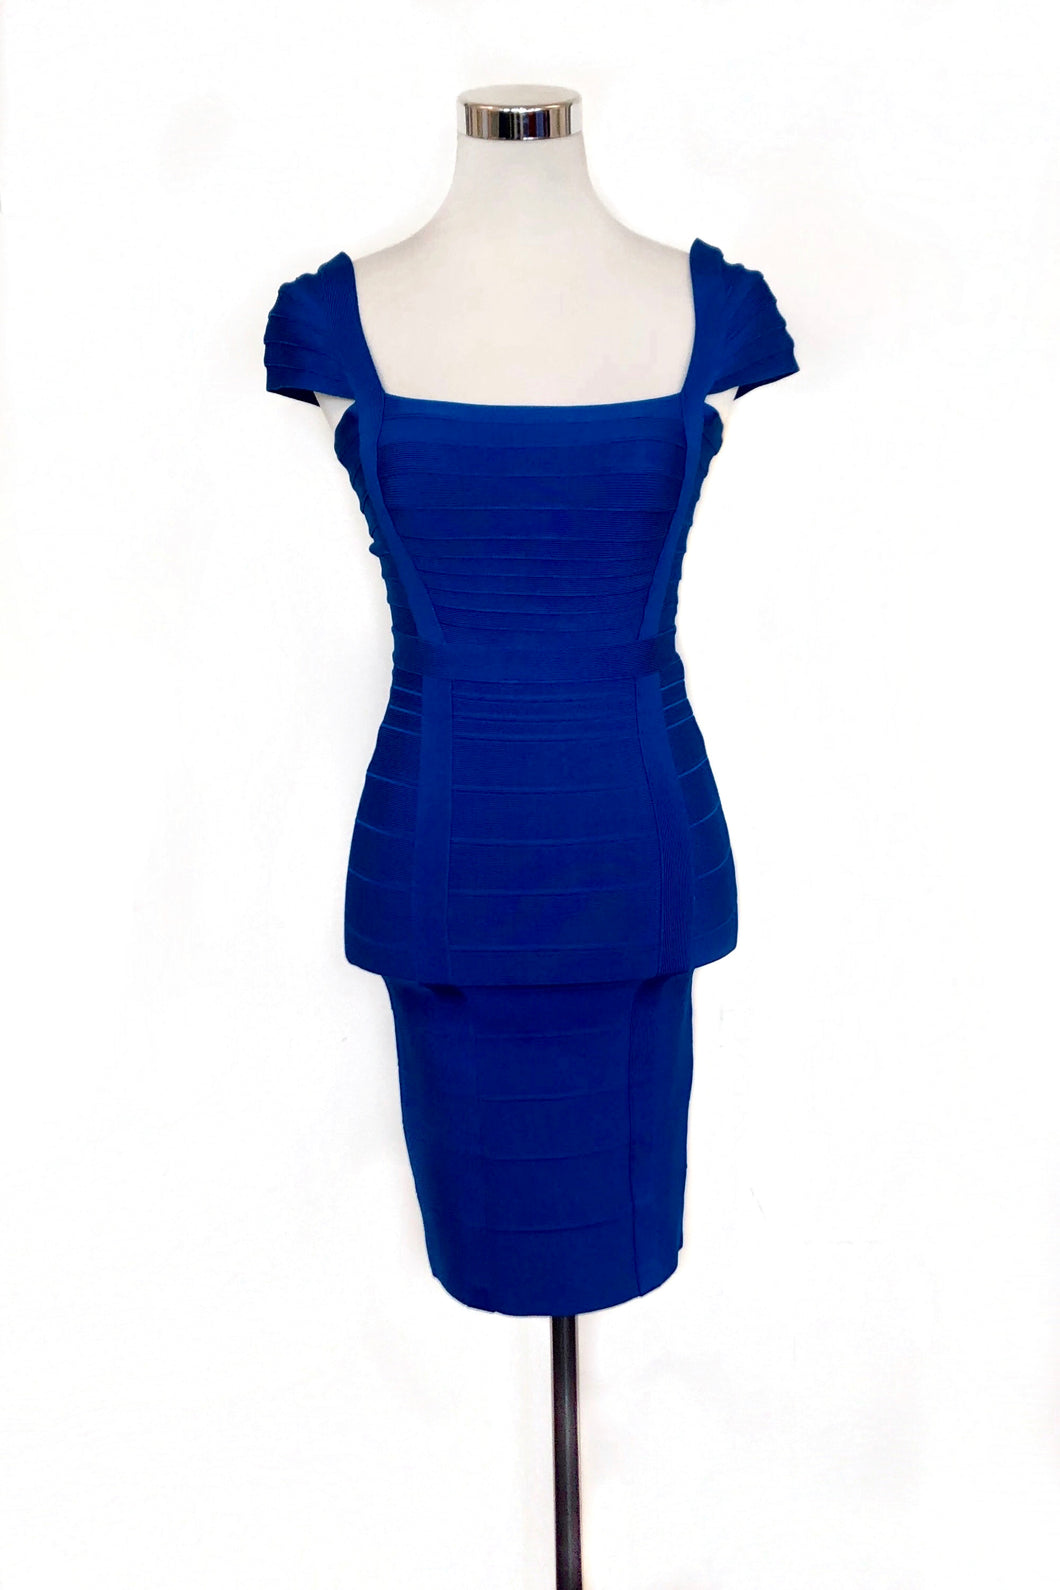 Herve Leger Icon Dress